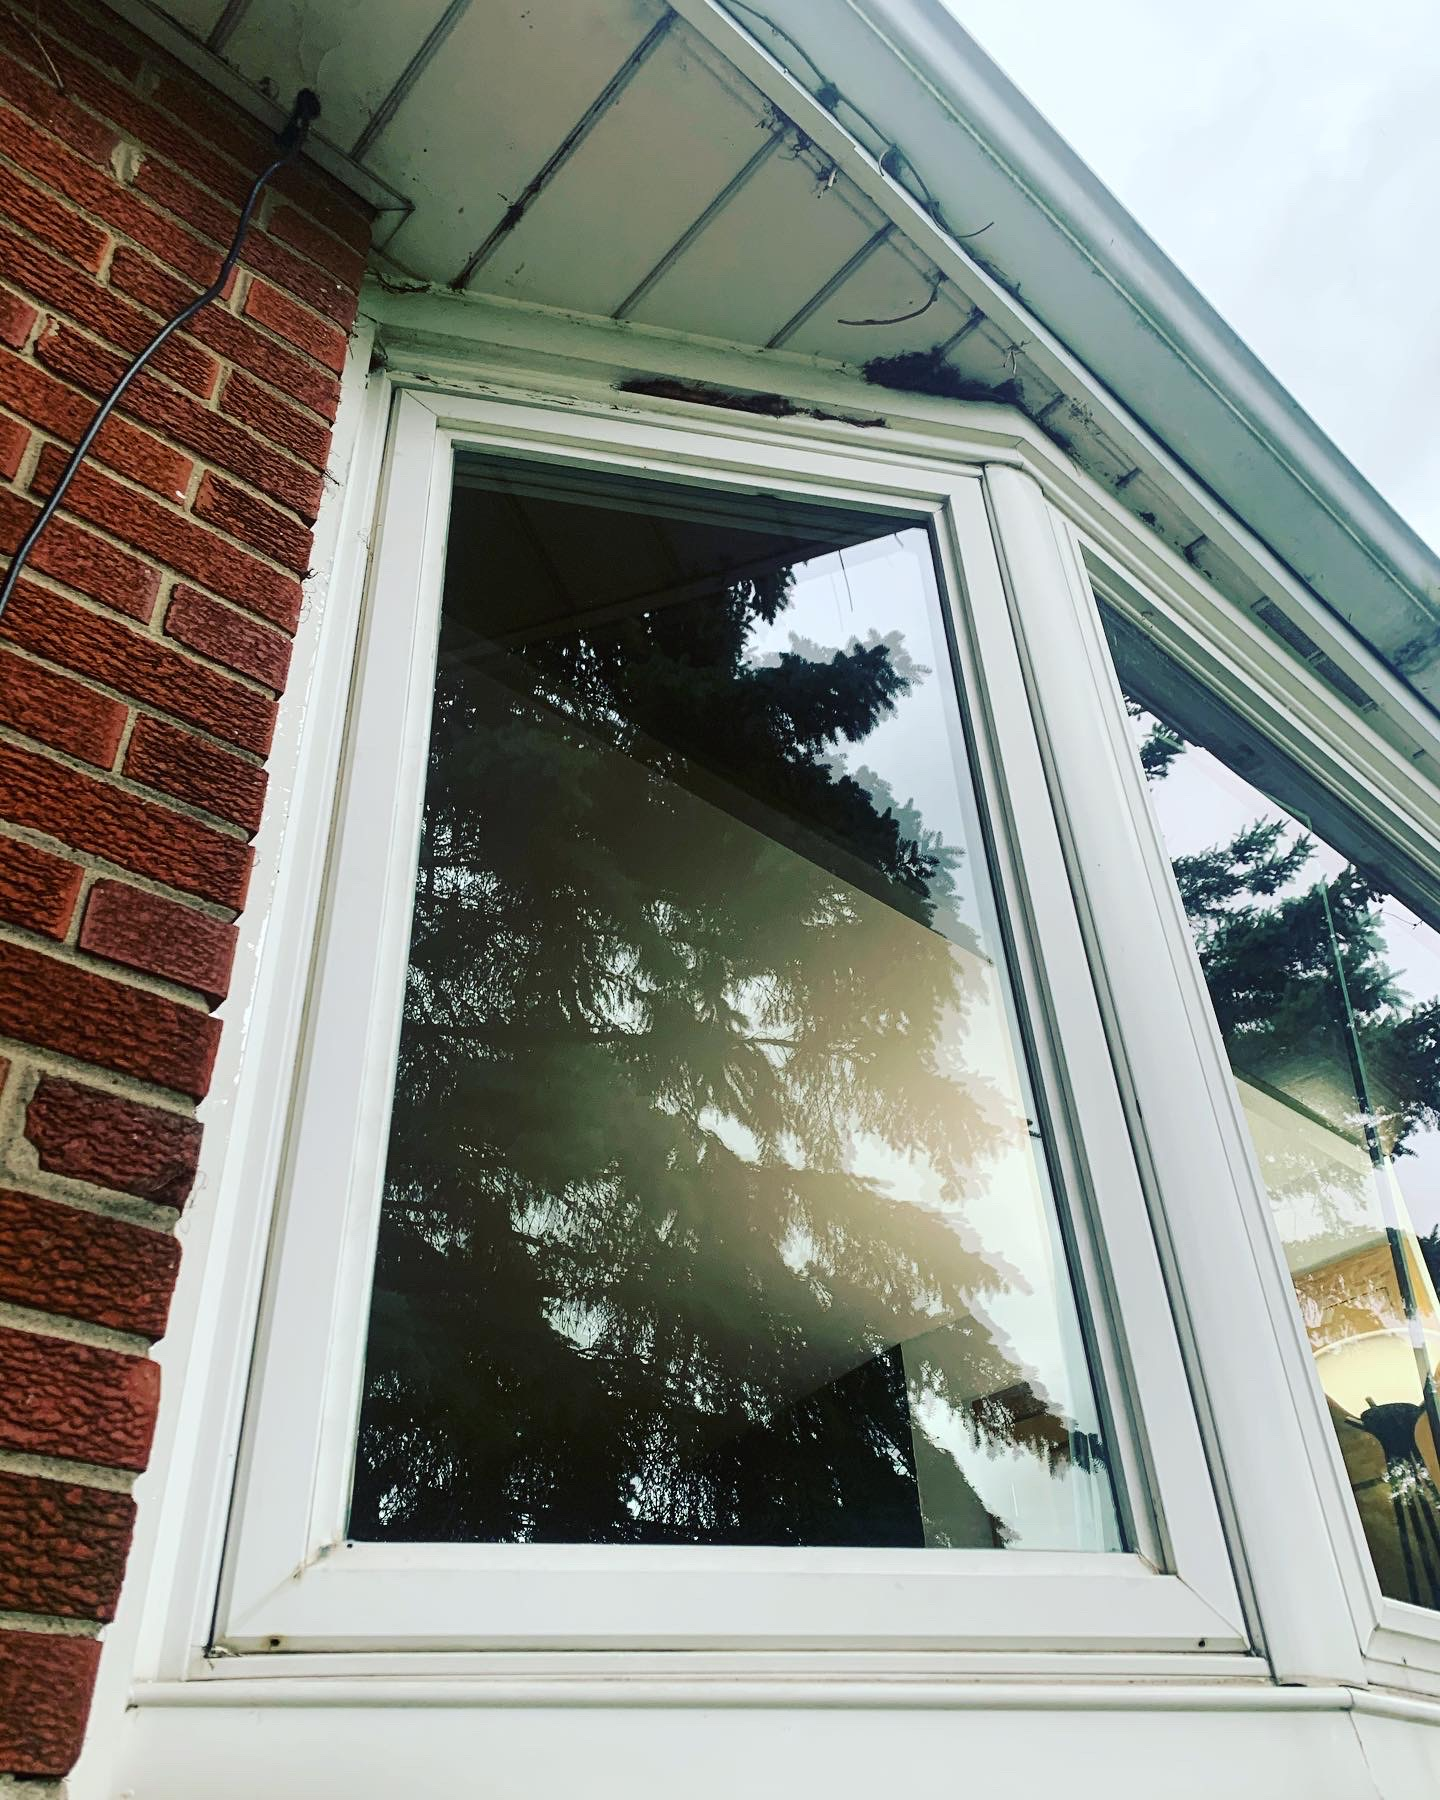 Cracked Glass unit replacement